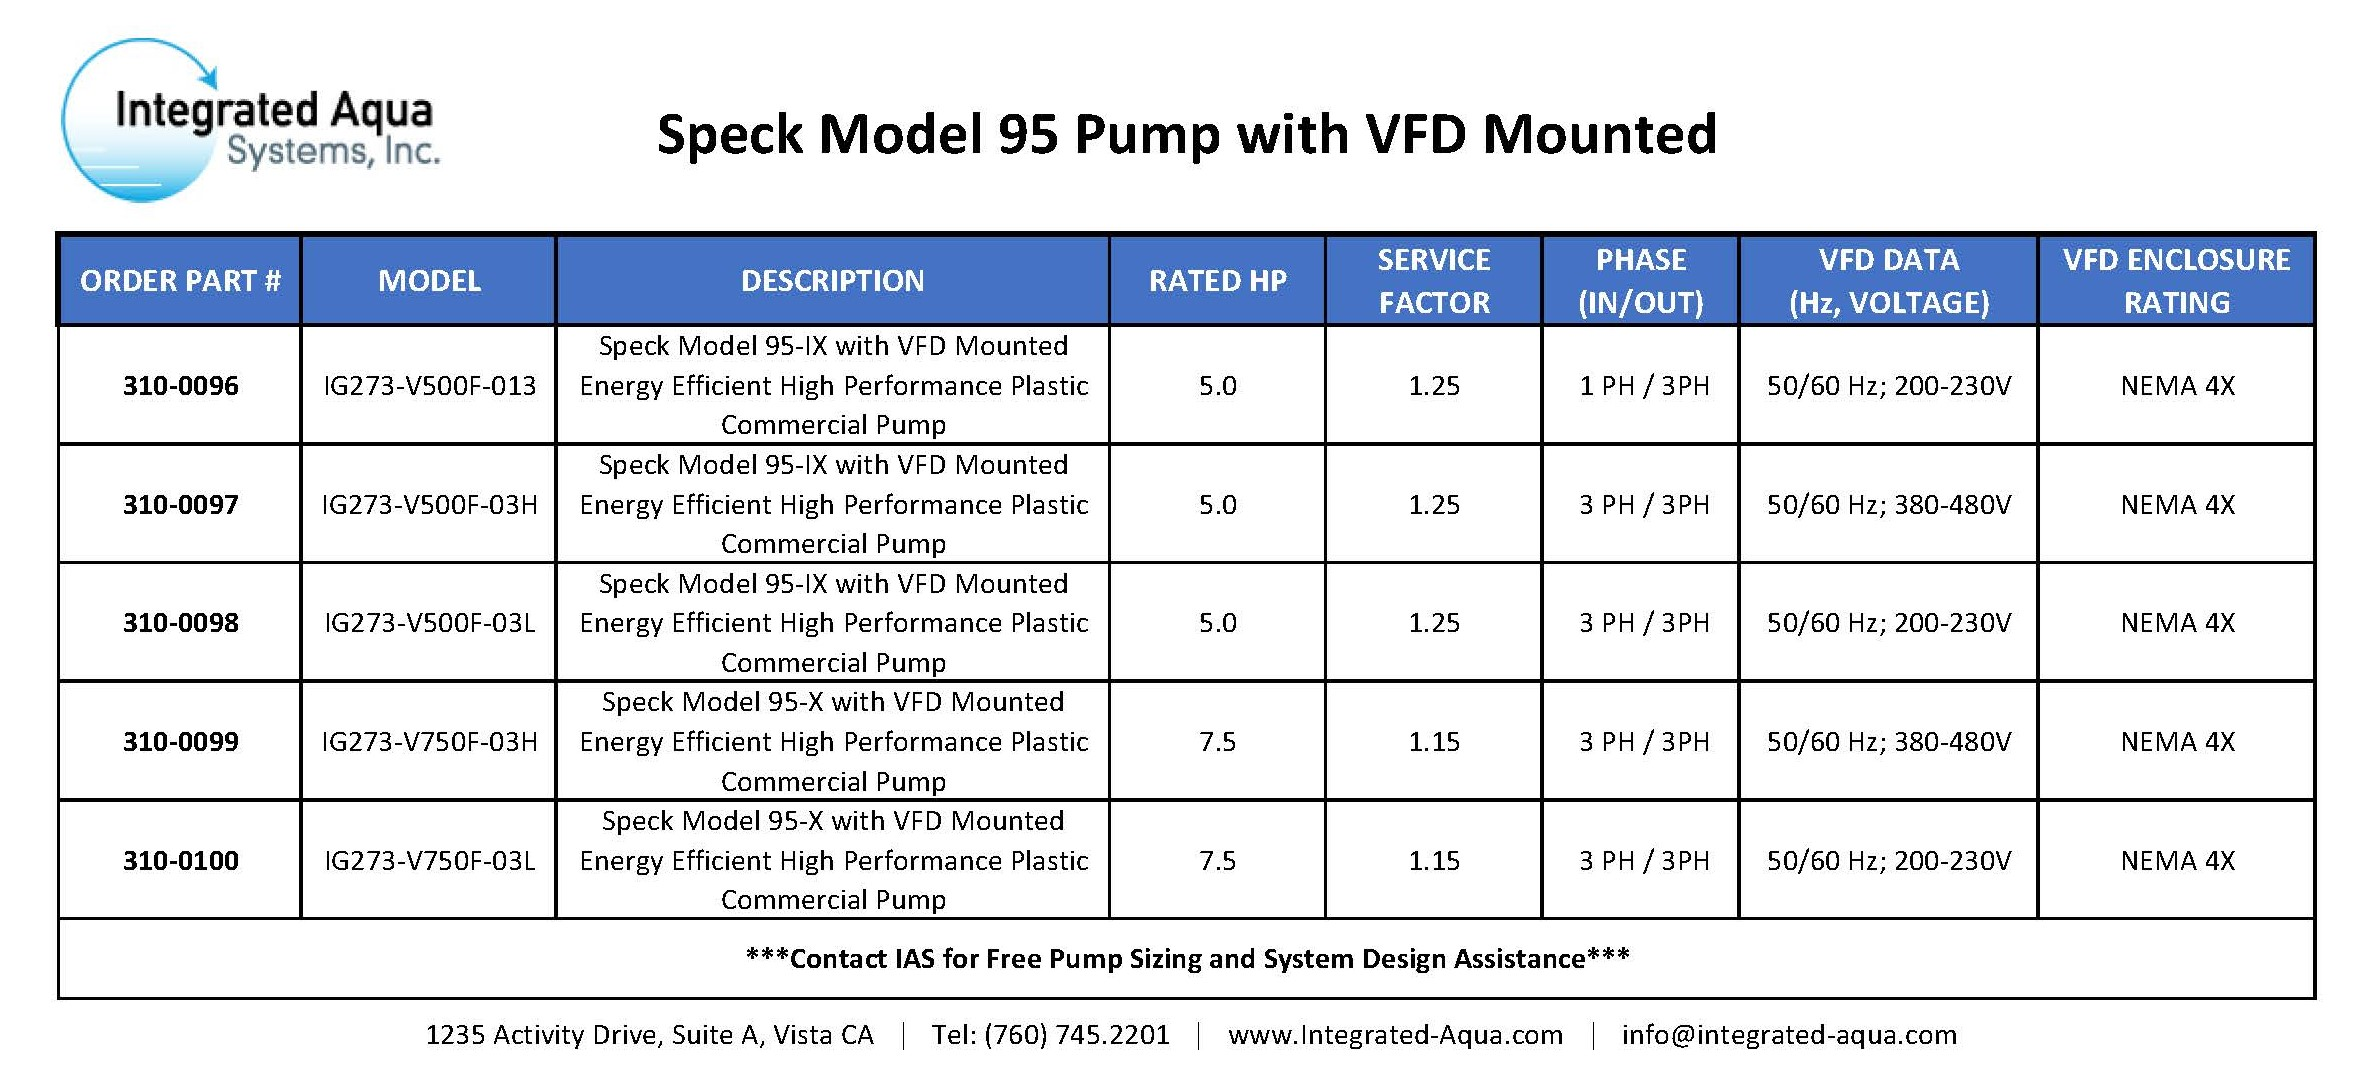 Speck Model 95 Pump with VFD Table